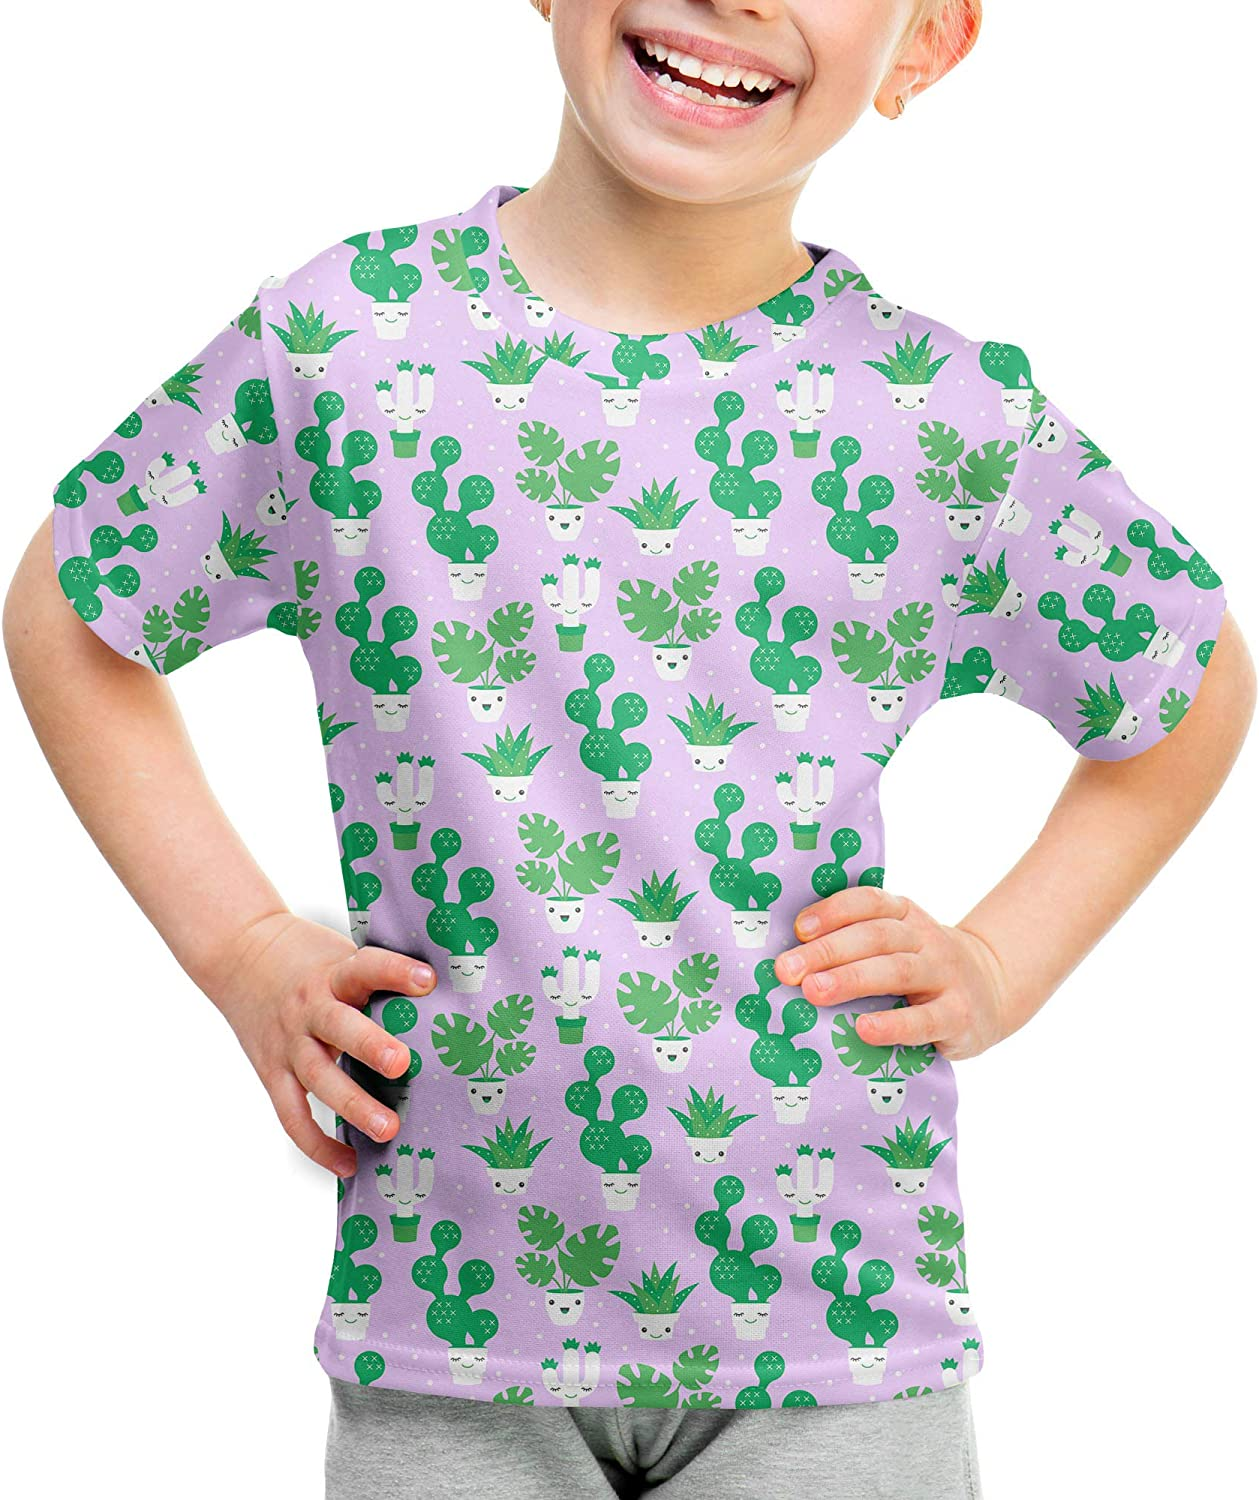 Rainbow Rules Kawaii Cactus Plants Kids Cotton Blend T-Shirt Unisex